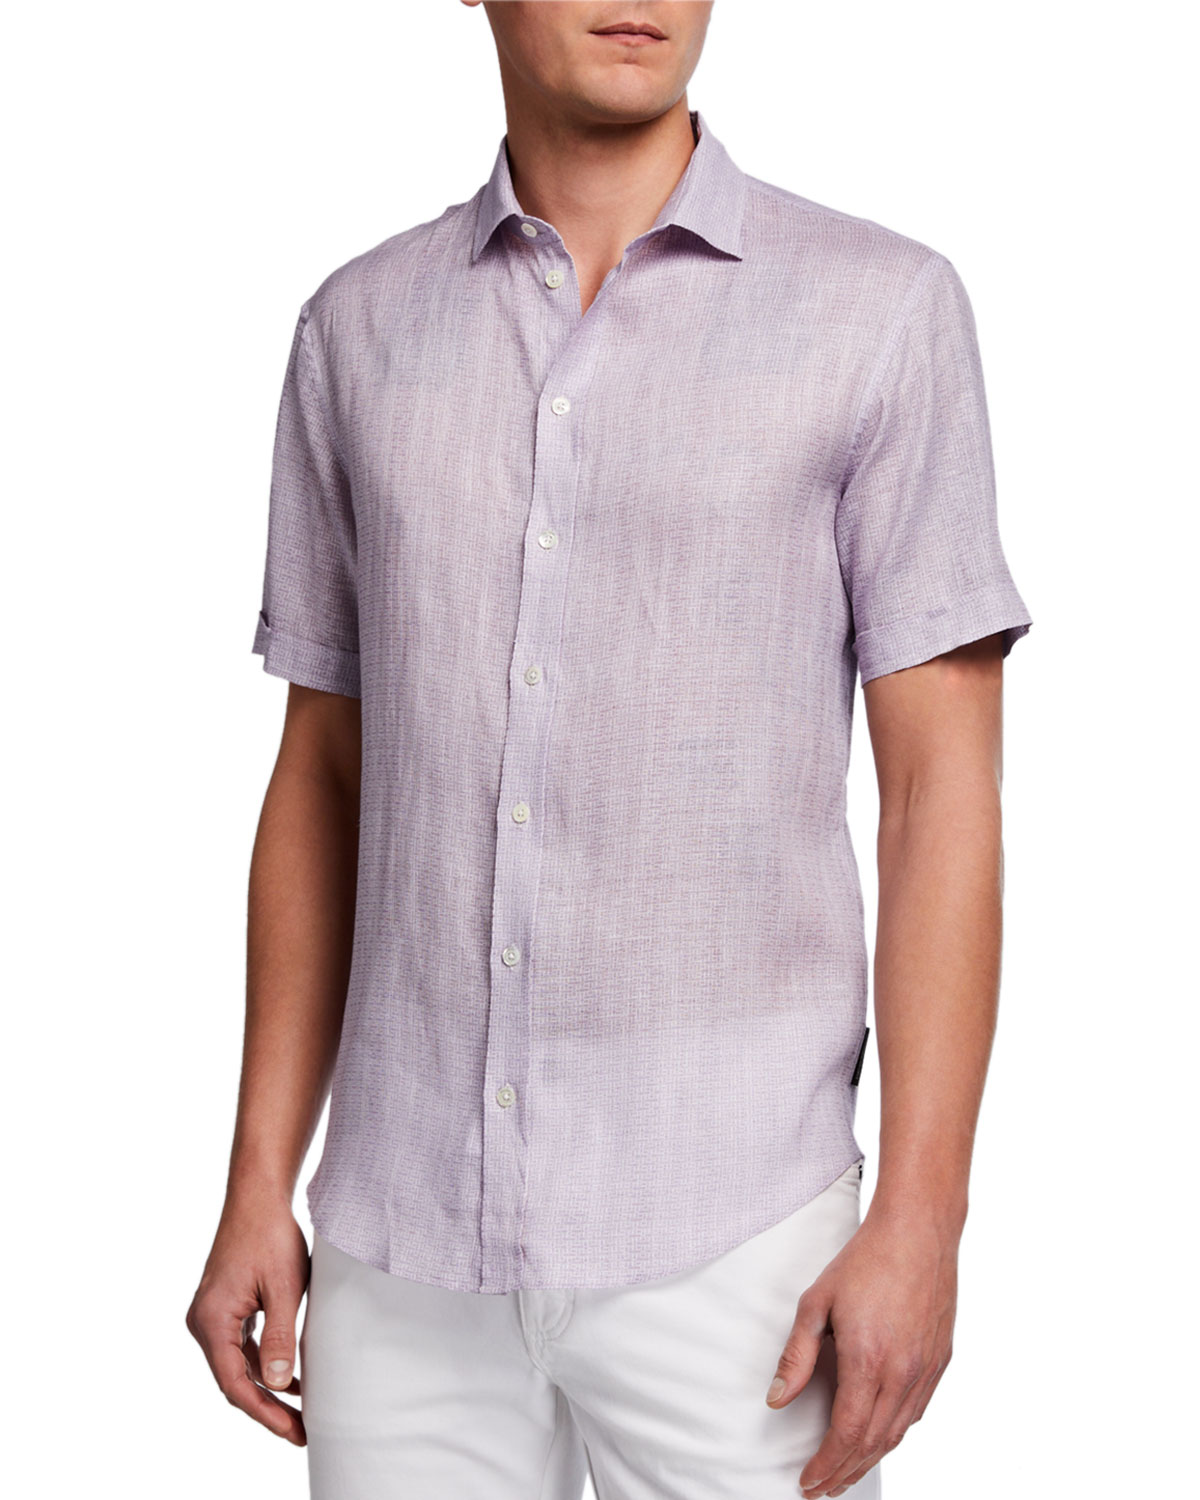 Emporio Armani Men's Micro-Box Linen Short-Sleeve Sport Shirt